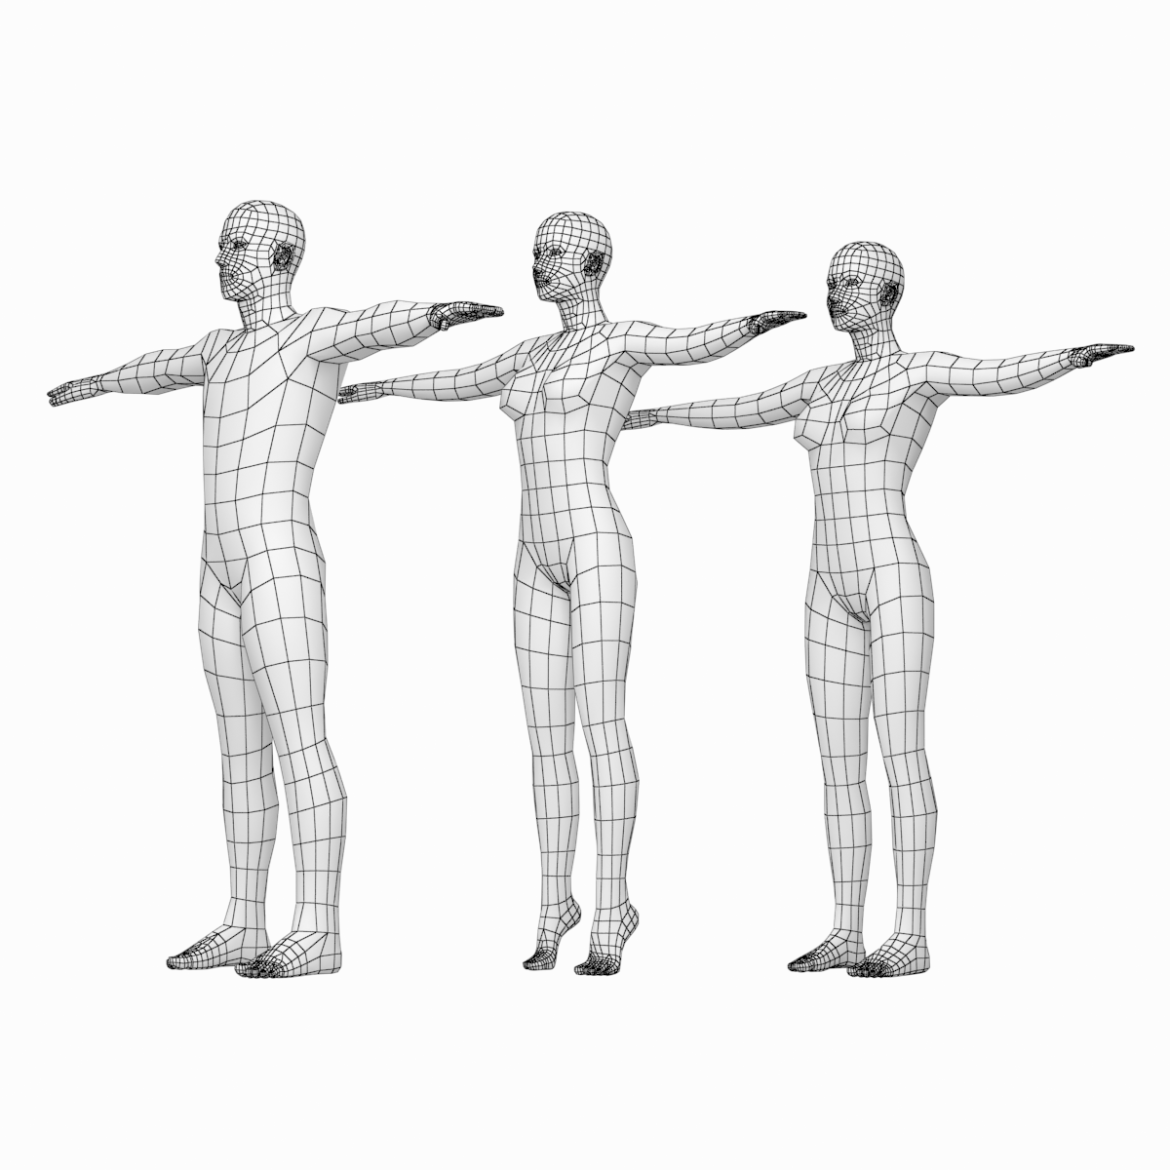 male and female base mesh in t-pose 3d model png stl obj ma mb max fbx dxf dwg dae c4d 3ds txt 305176